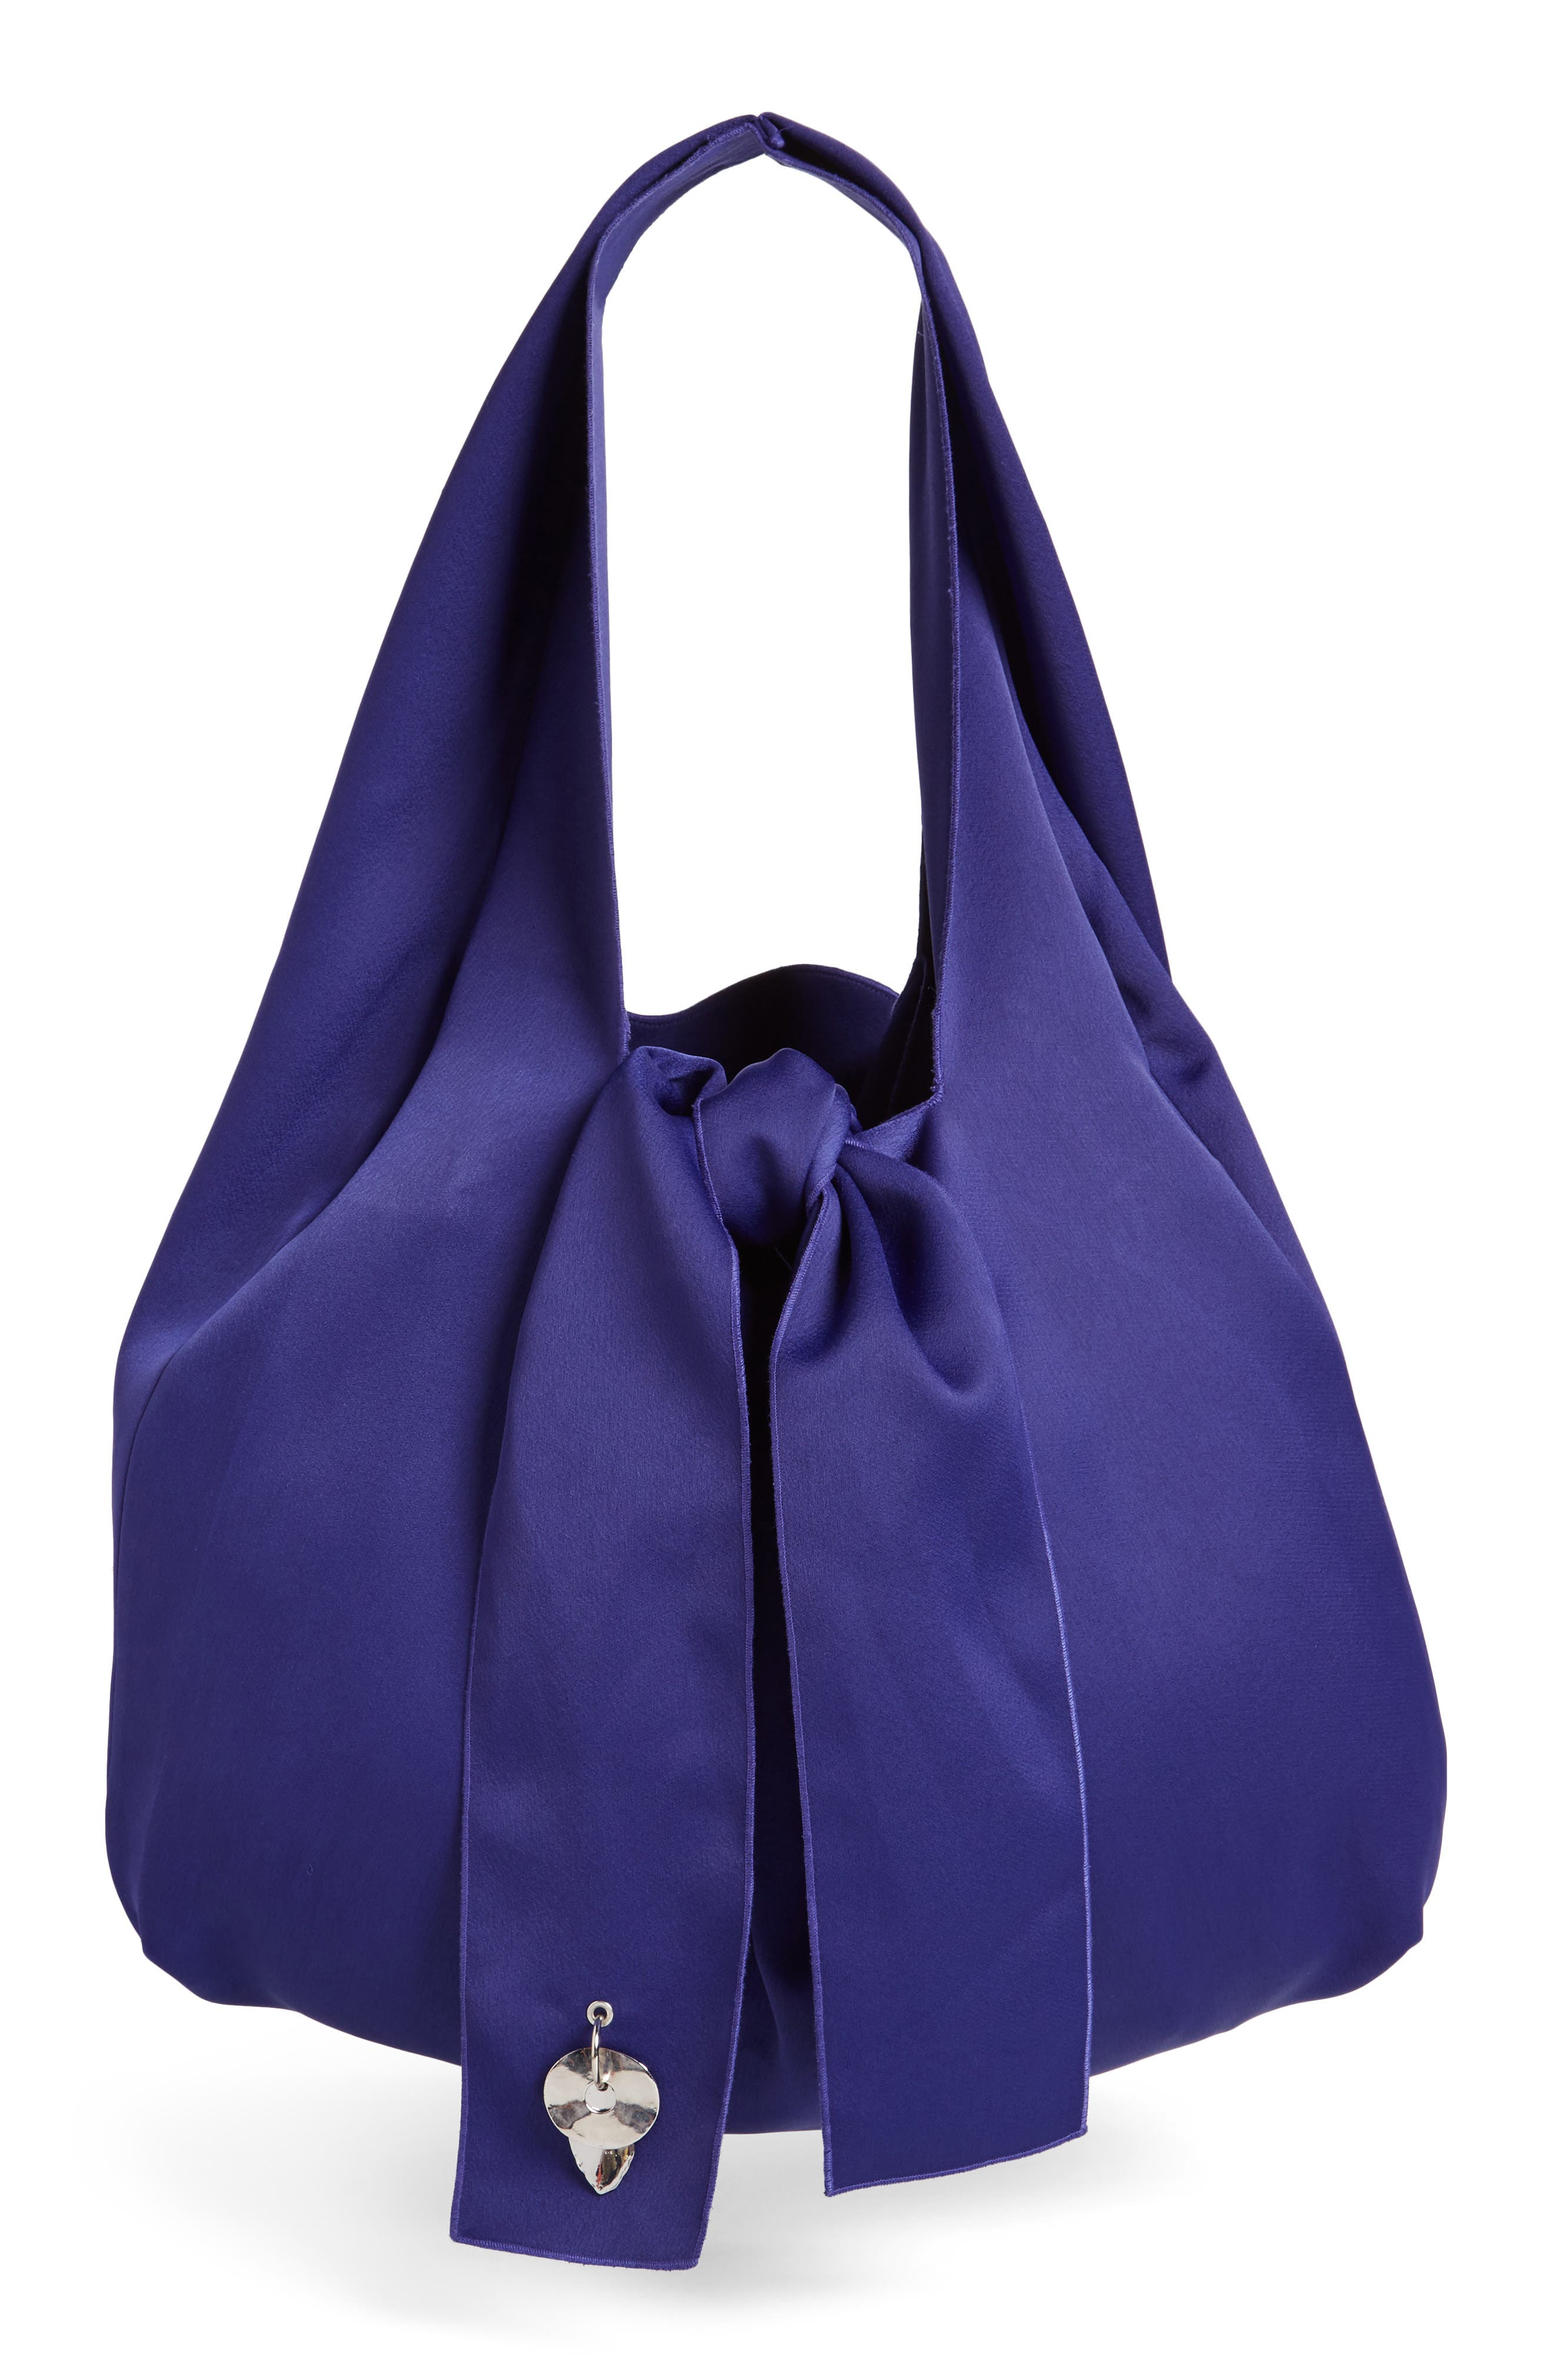 Main Image - 3.1 Phillip Lim Oversize Tie Front Tote